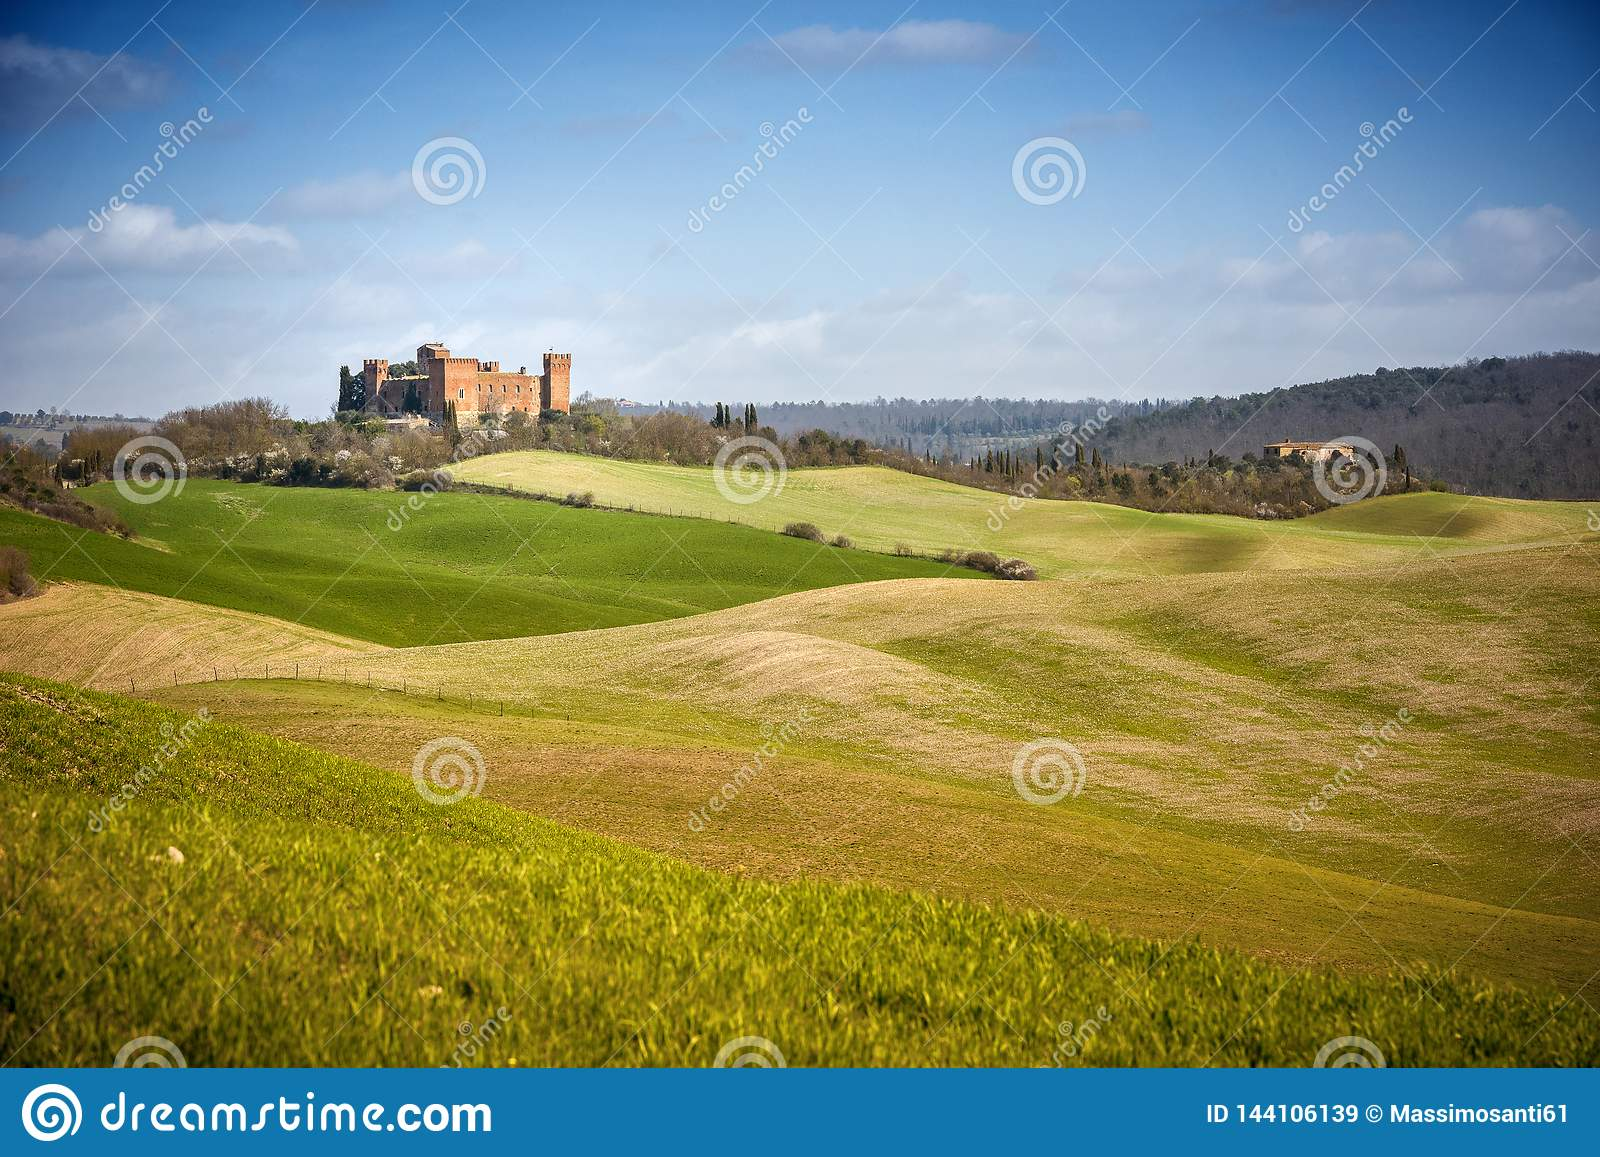 View of Castle of Gallico. Beautiful landscape of hills and fields near Asciano in Tuscany, Siena, Italy